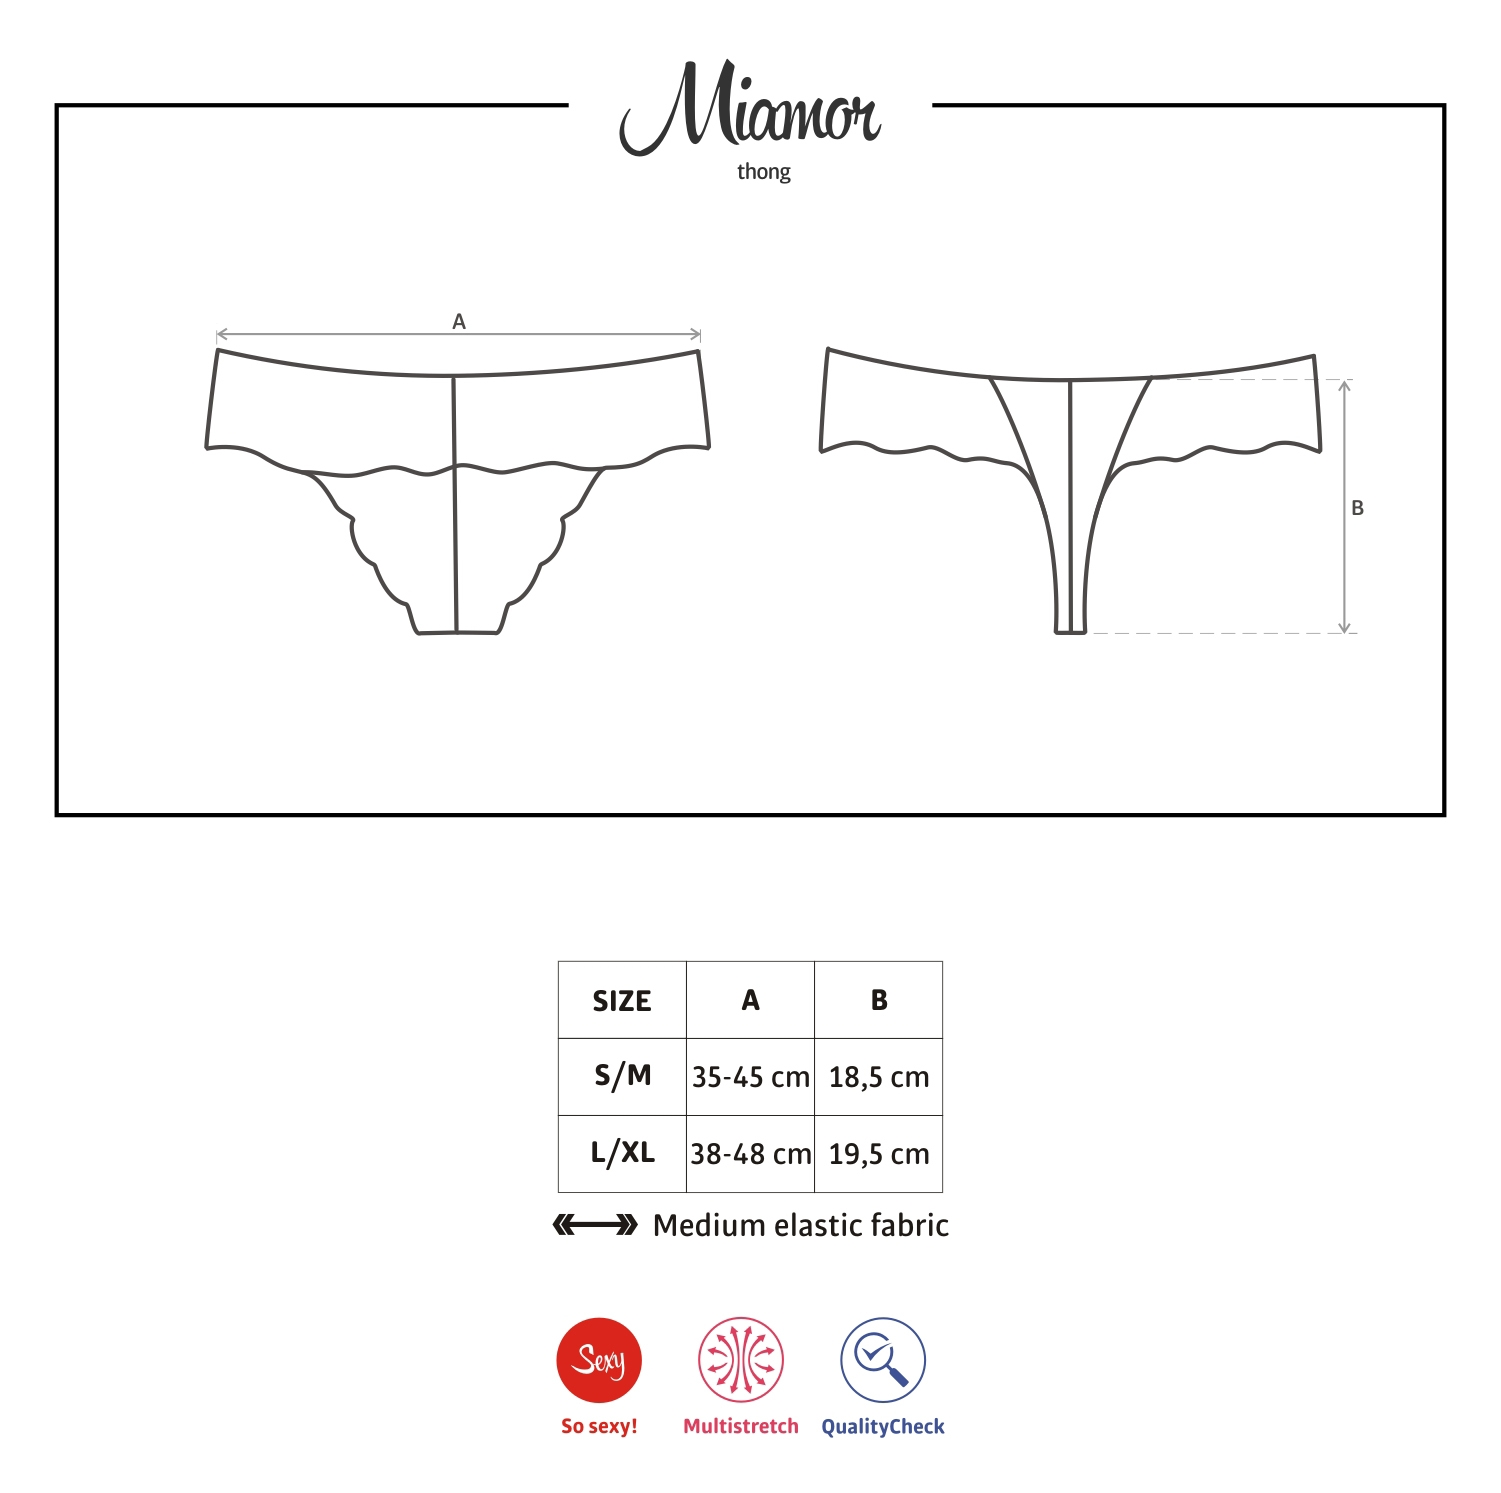 eng miamor thong - OBSESSIVE Miamor lace thong